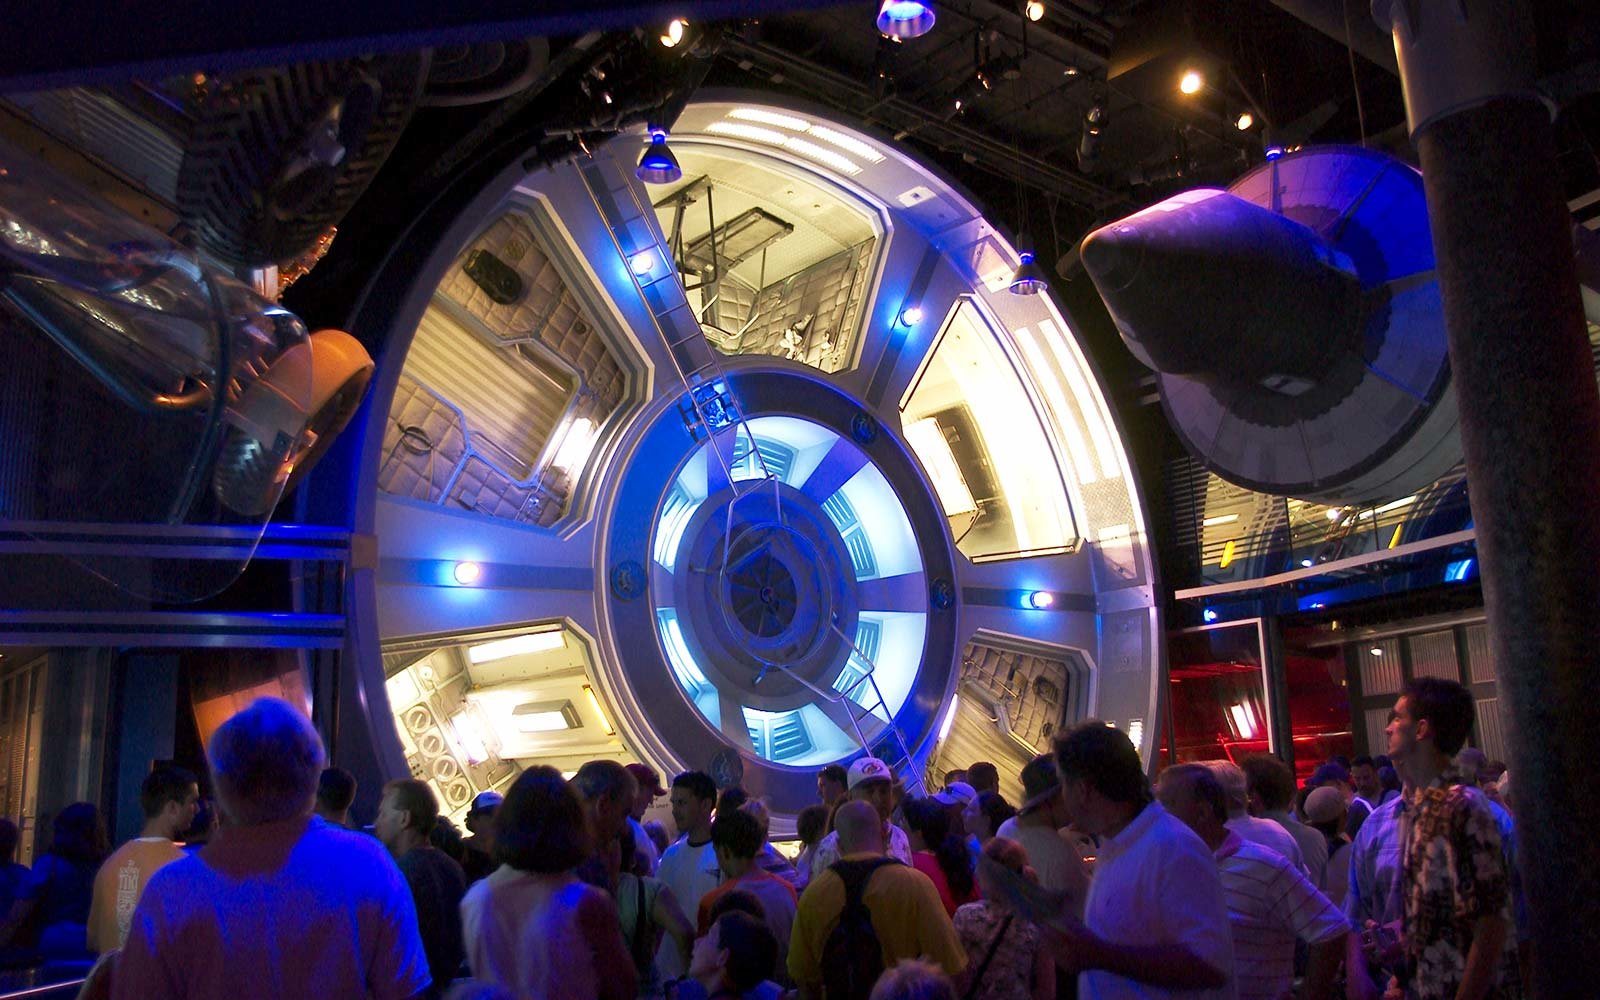 33. Mission: SPACE